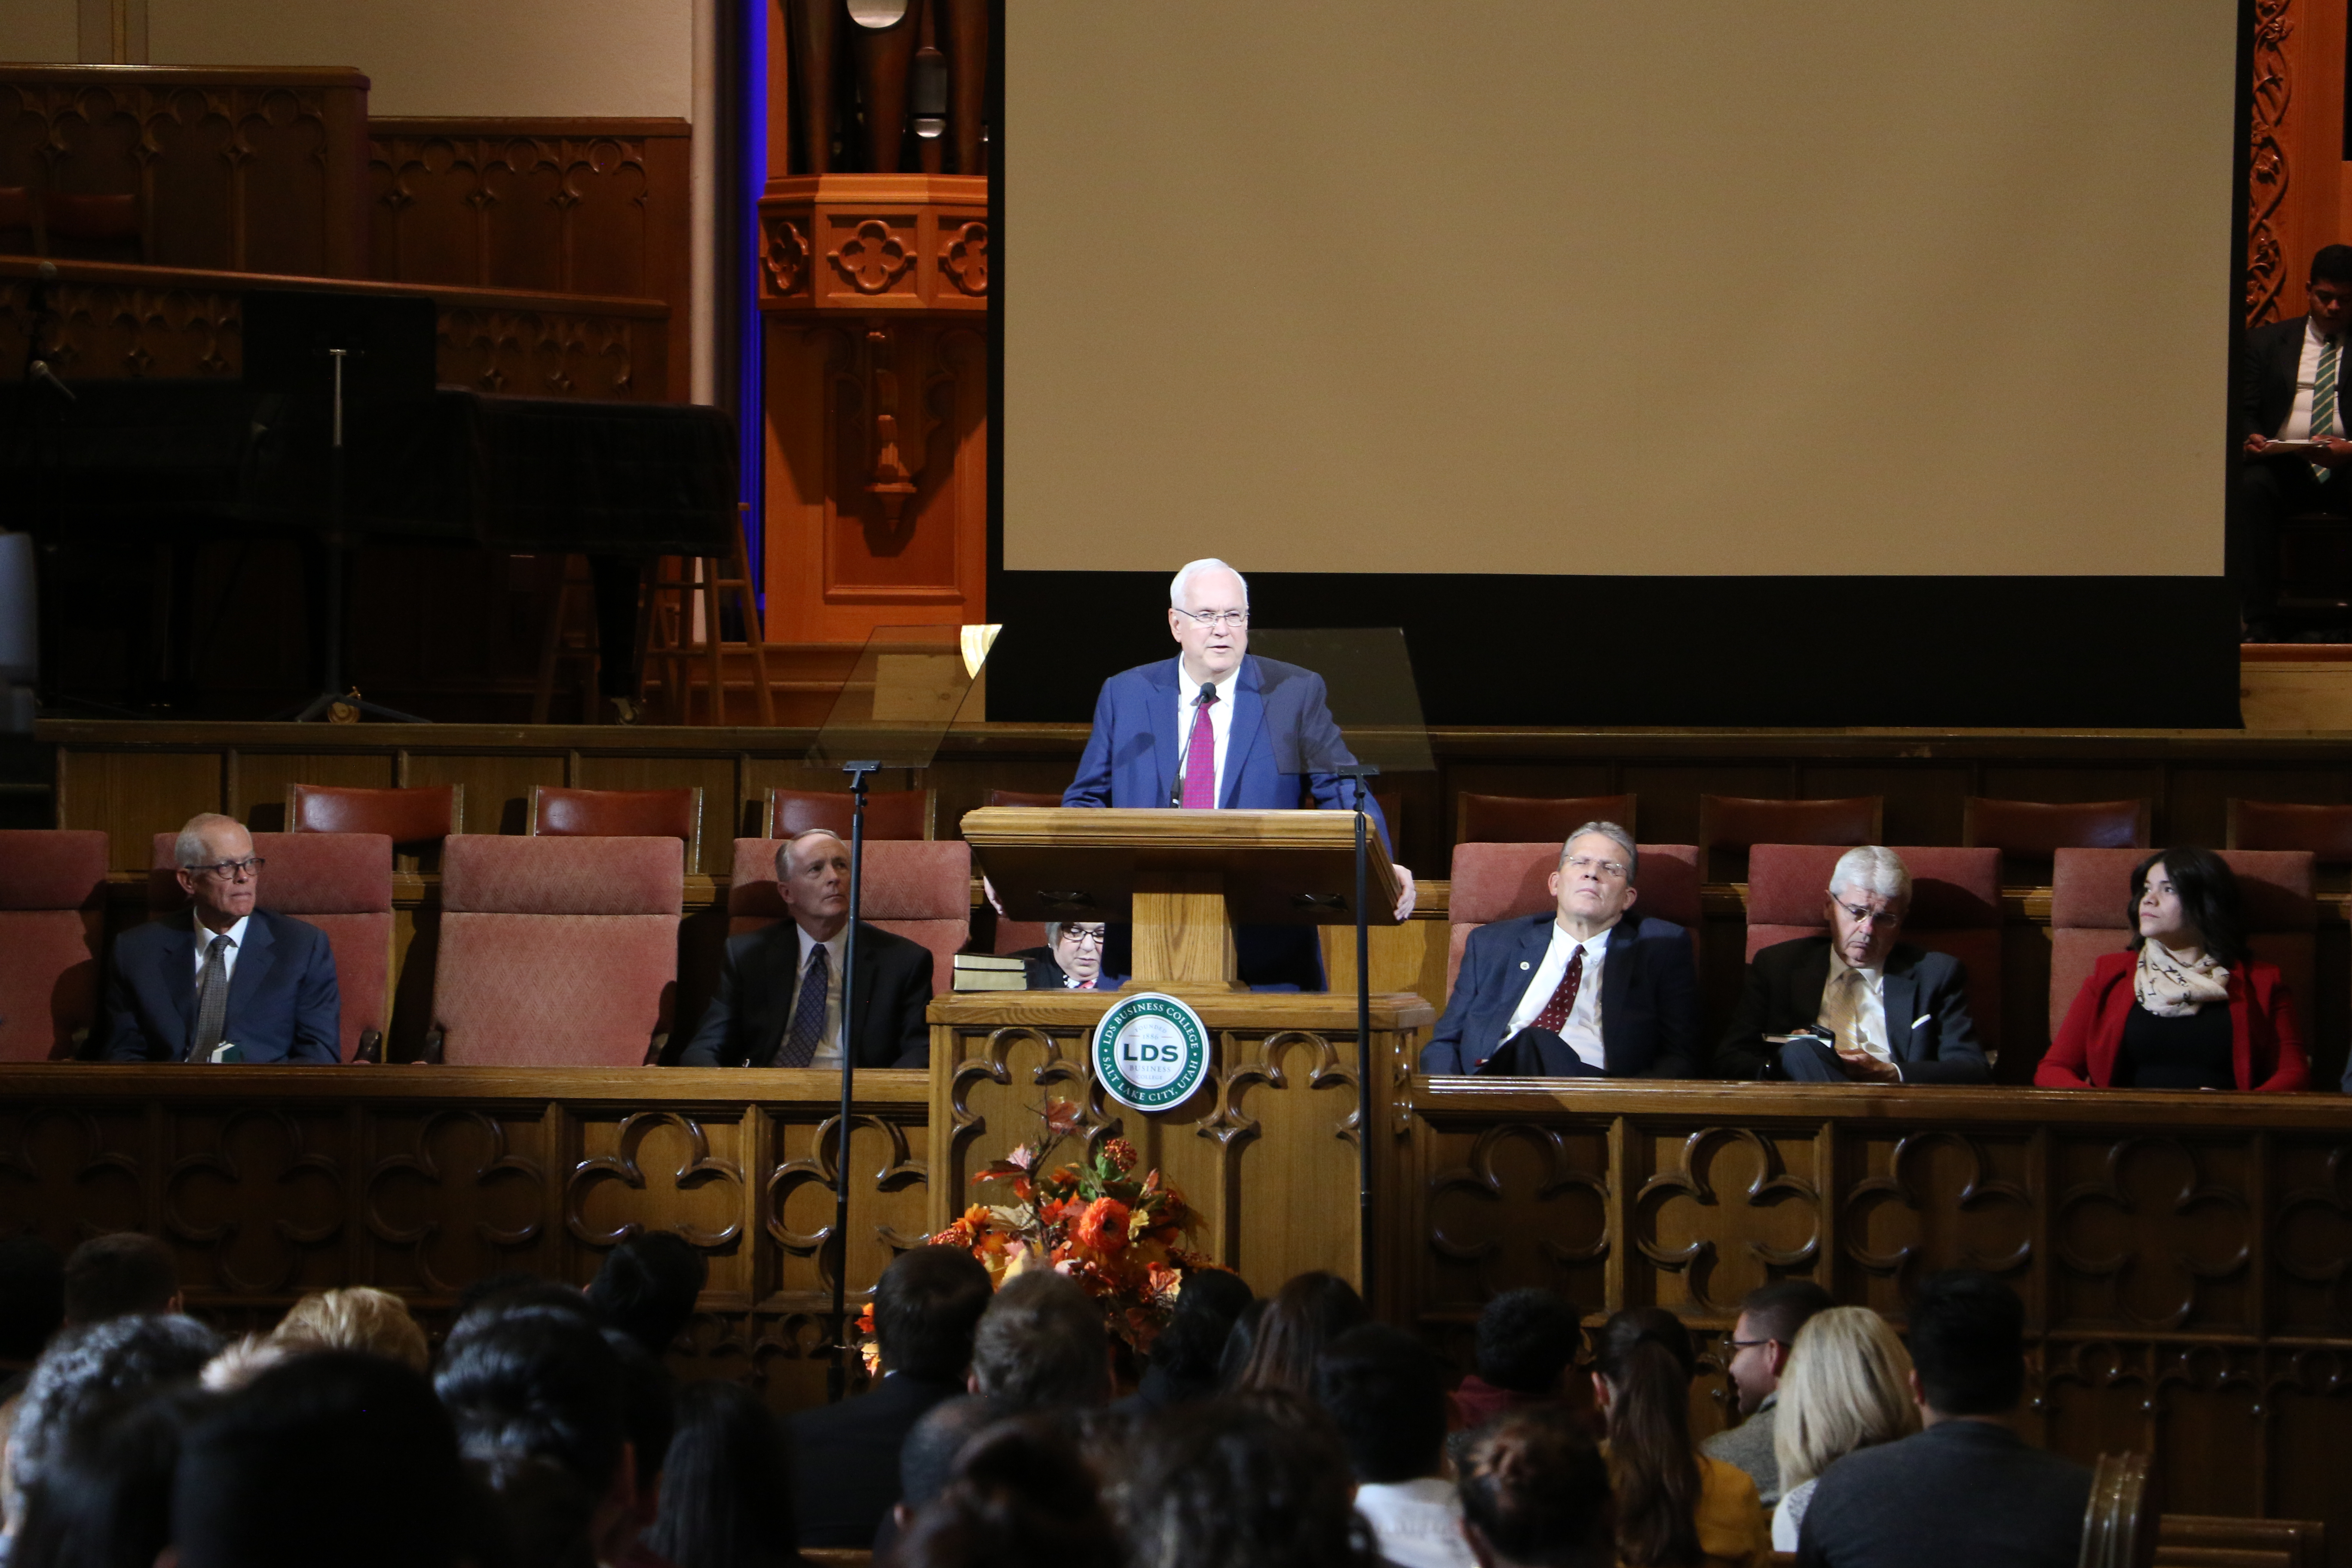 Elder Robert C. Gay of the Presidency of the Seventy speaks during an LDS Business College devotional in the Assembly Hall on Temple Square on Nov. 5, 2019.